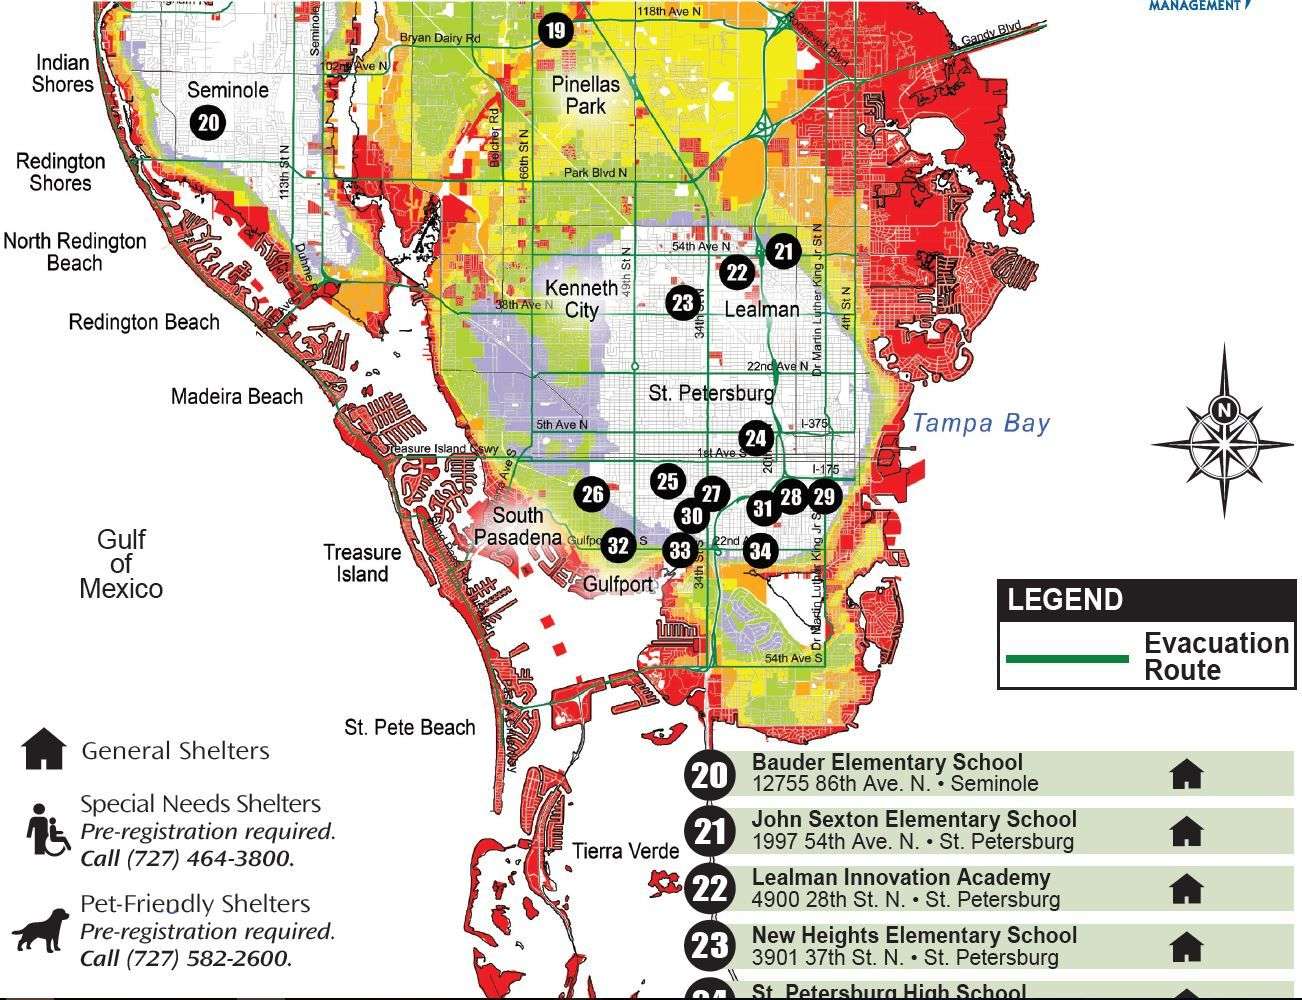 Emergency Officials In Pinellas County Have Decided To Evacuate Coastal Areas And Mobile Homes Ahead Of Hurricane Irm Indian Shores Eco House Design Evacuation